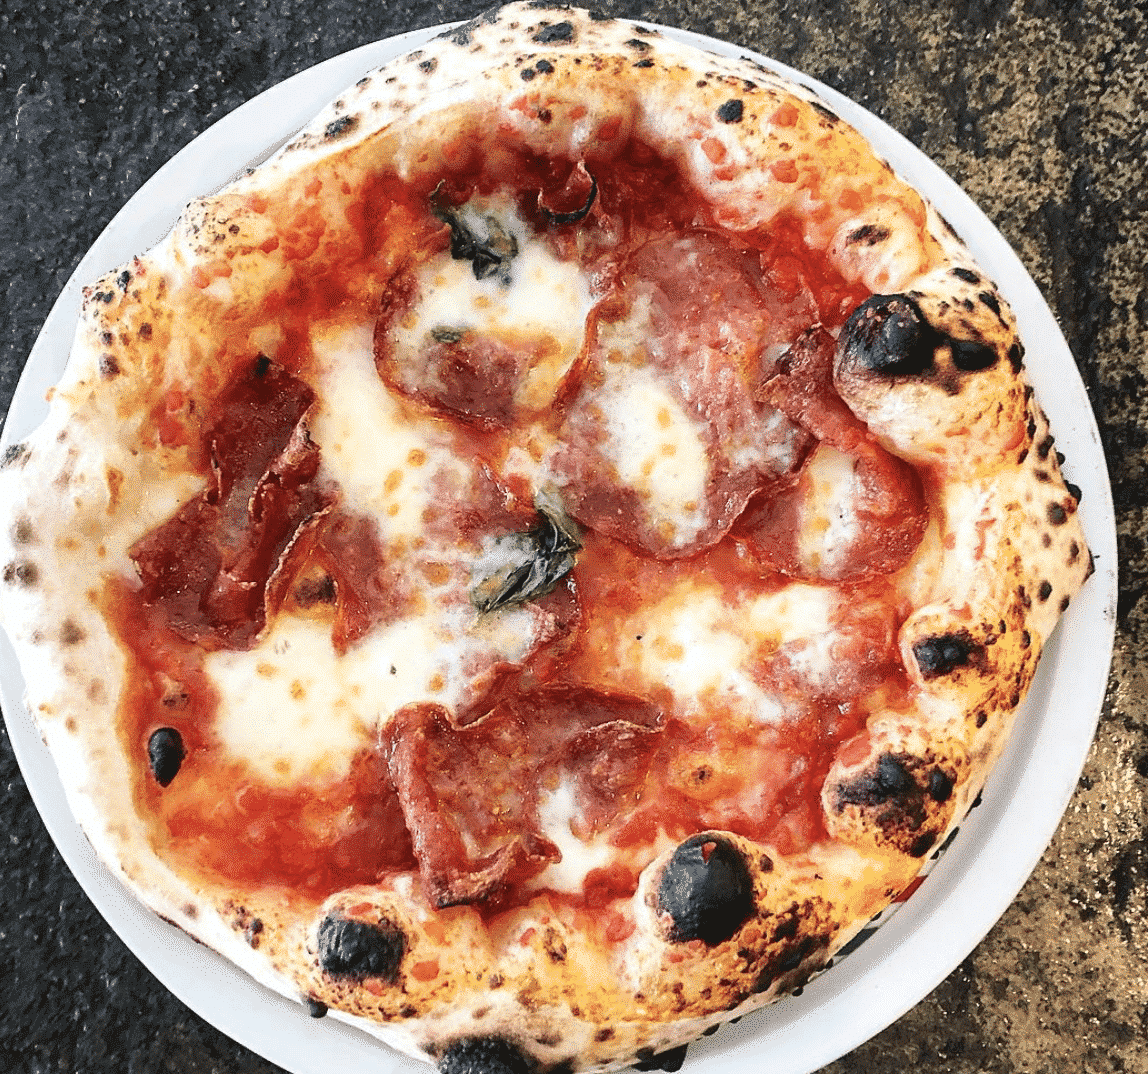 Cape Town restaurant Burrata voted as one of the best places to eat Pizza in the world